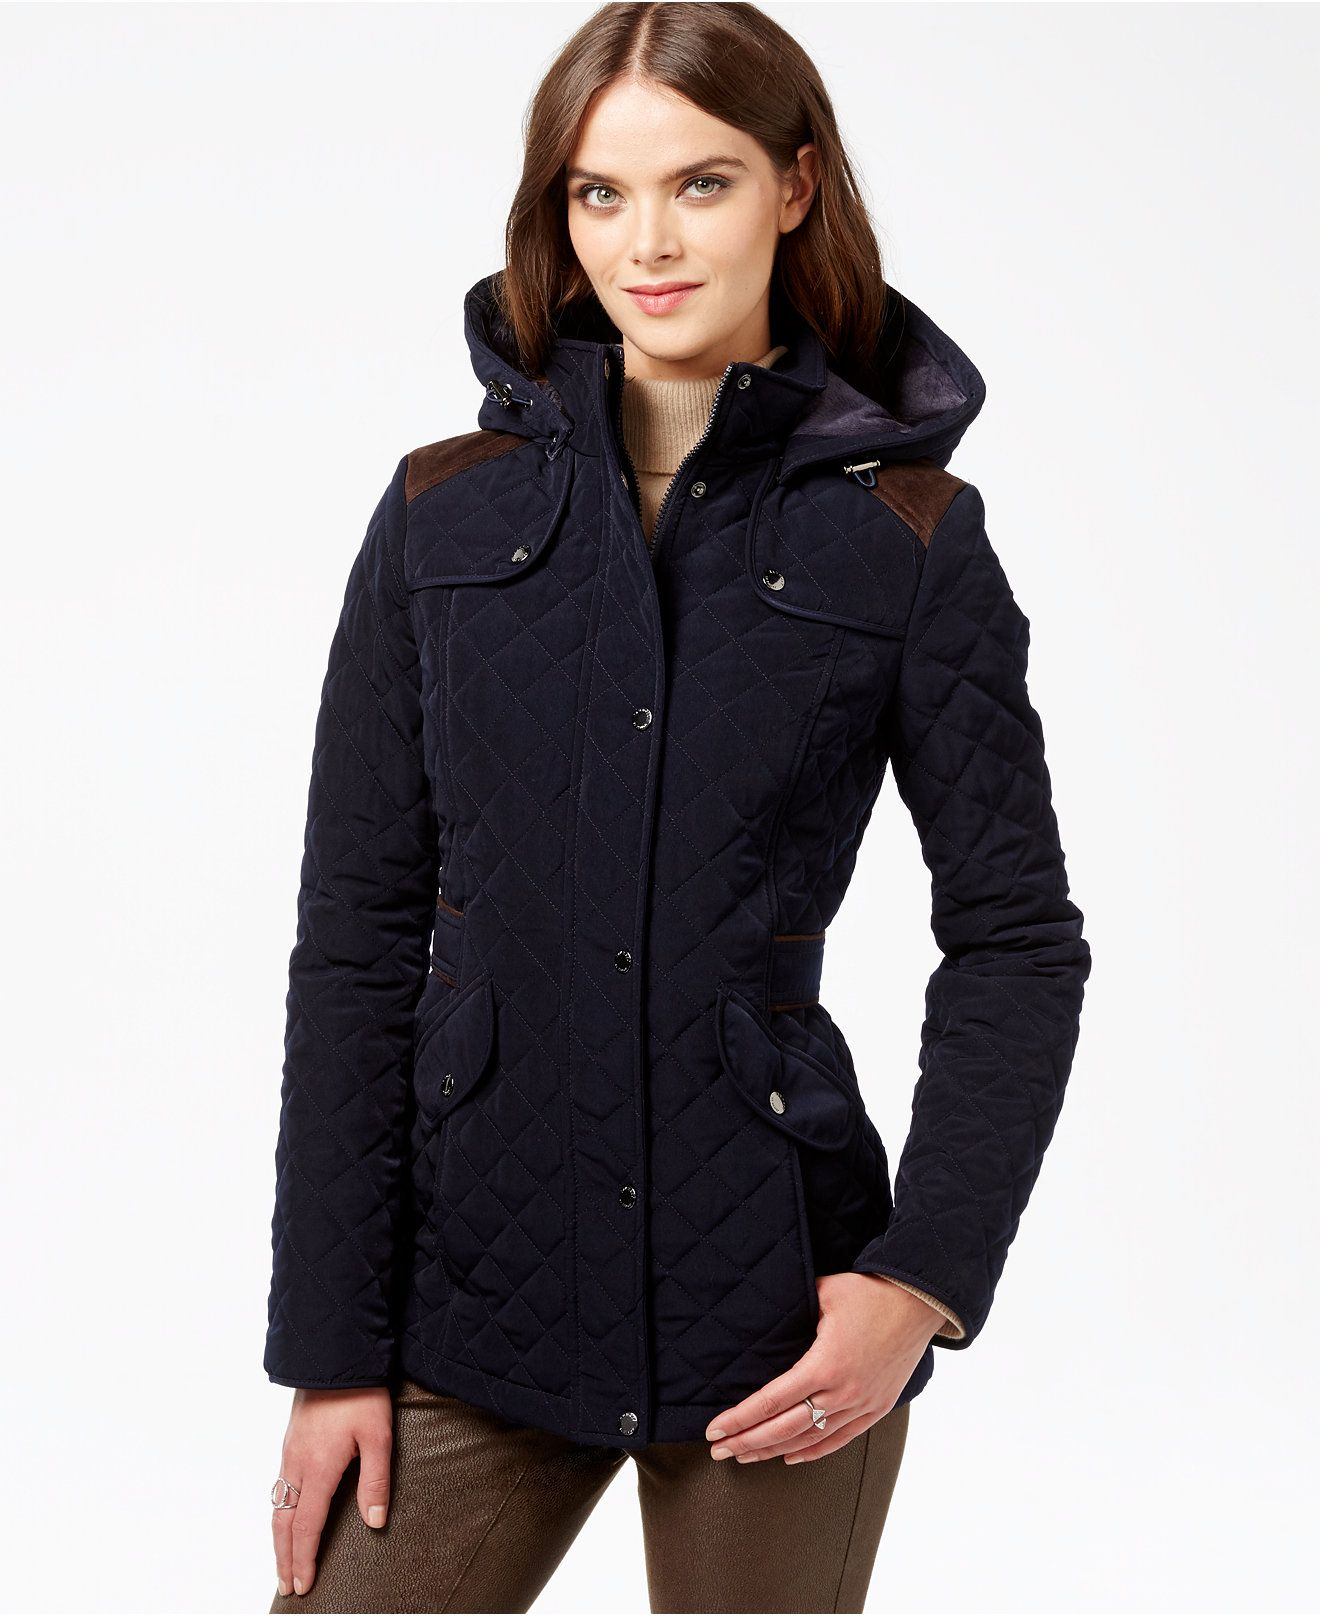 Laundry By Design Hooded Quilted Coat Coats Women Macy S Quilted Coat Coats For Women Coat